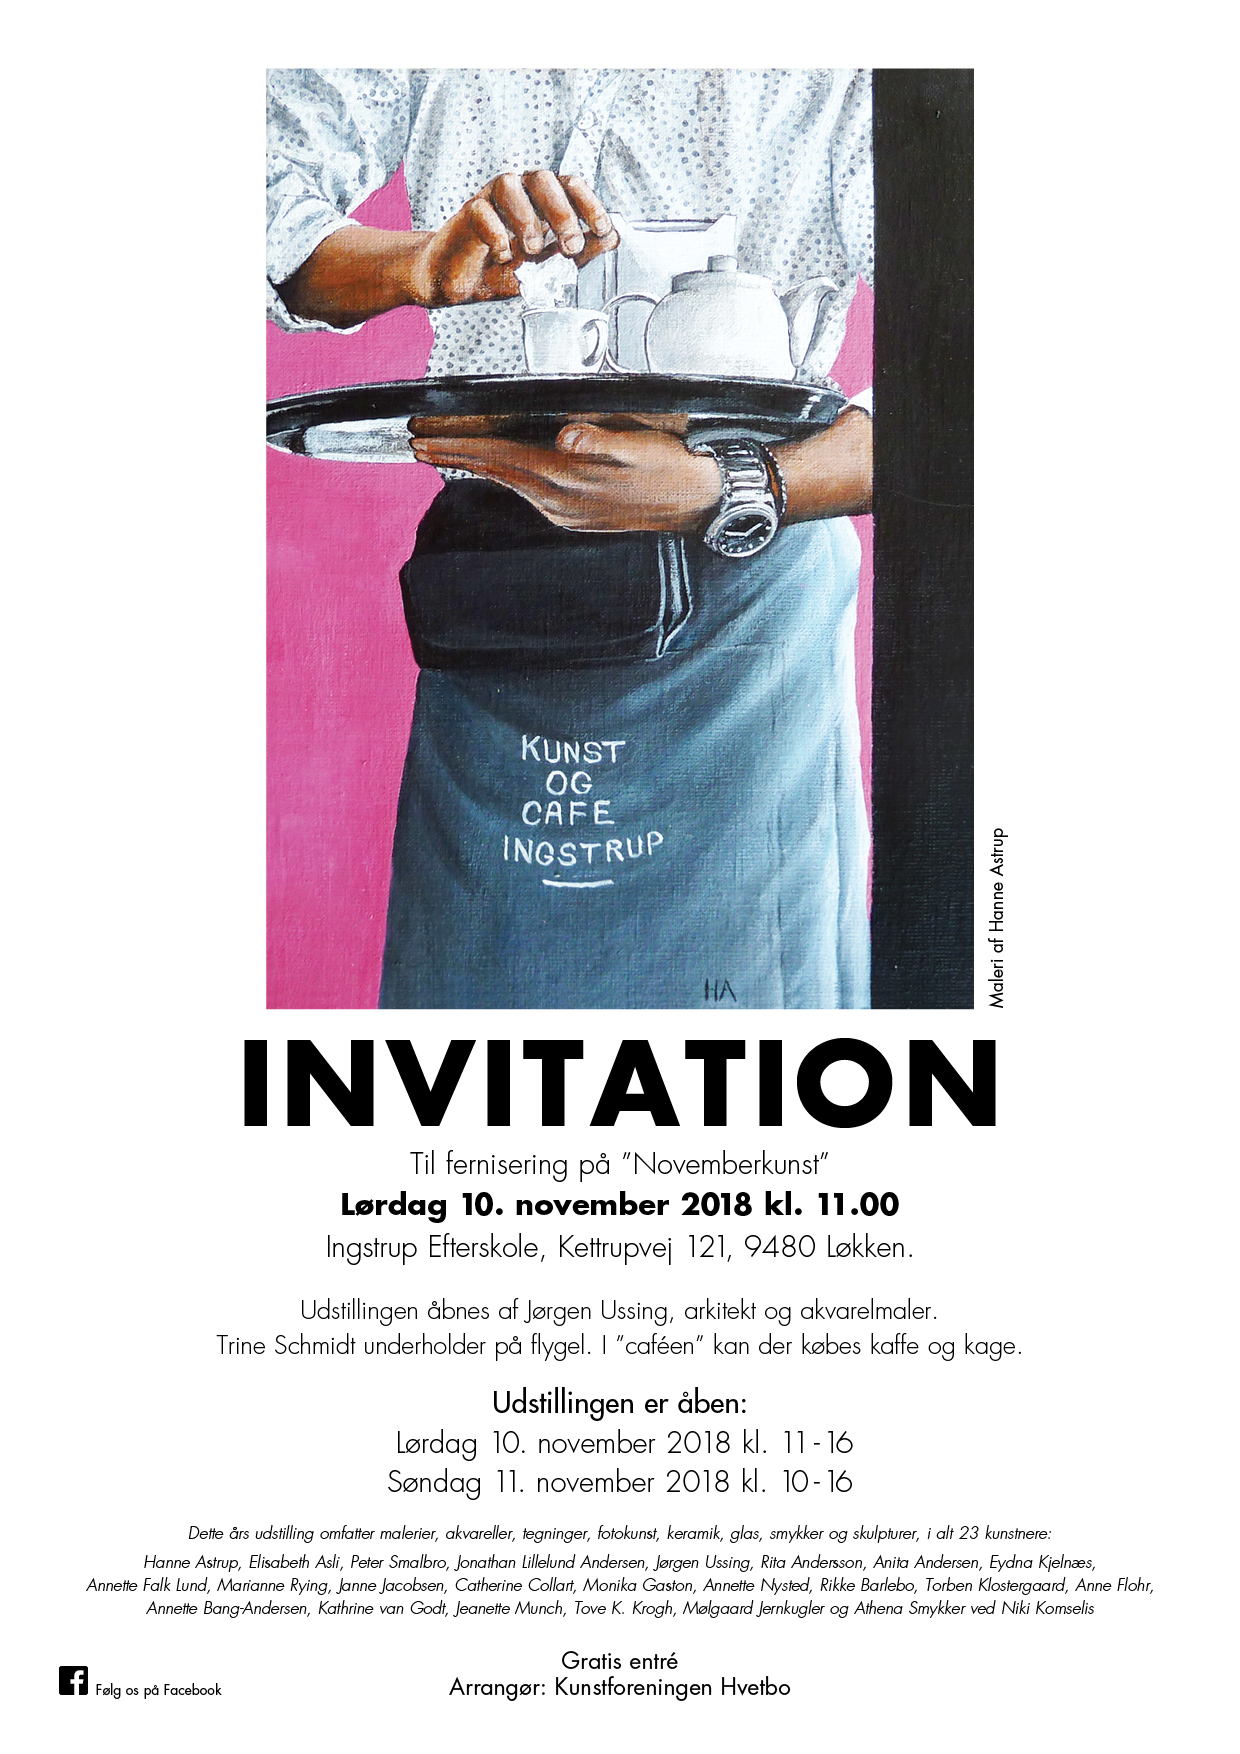 Novemberkunst_A4 invitation_FB.jpg